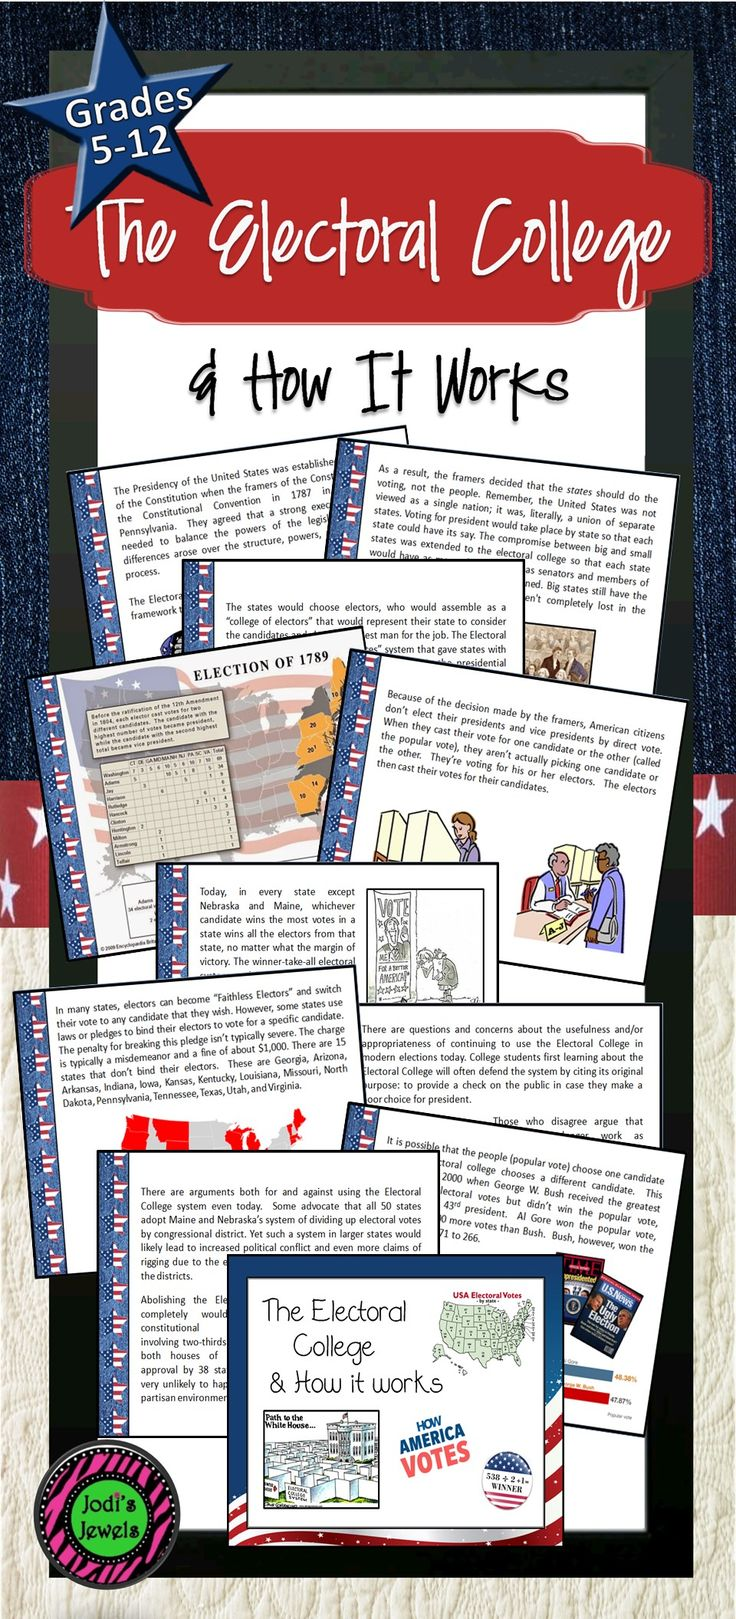 Kid friendly PPt presentation about the Electoral College and how it affects American politics. Historical explanation and current political significance in today's election process are explored. Fantastic for upper elementary through high school! Includes a hyperlink to a History.com short video explanation of the Electoral College.